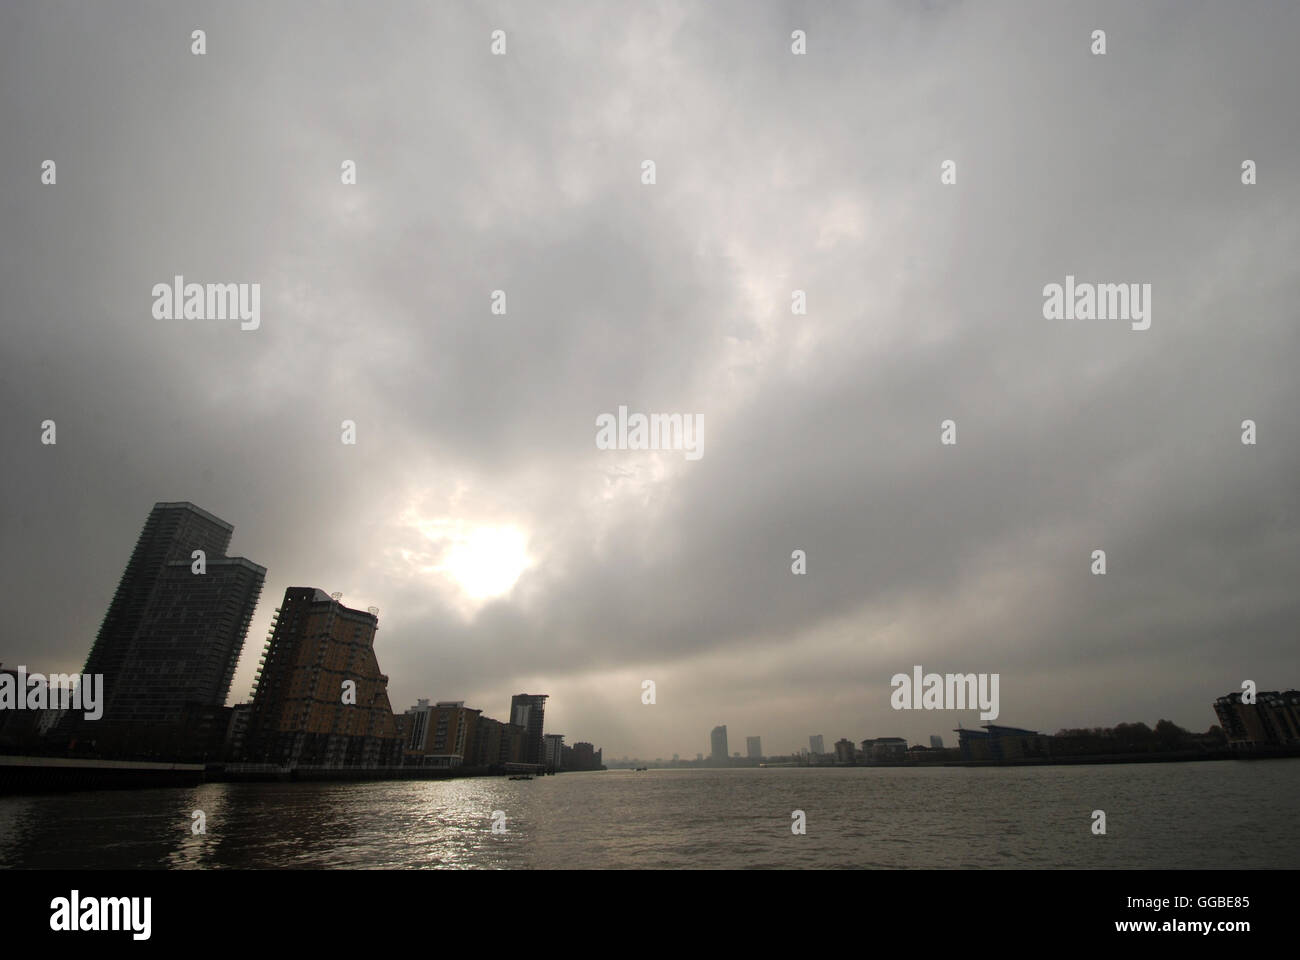 Taken from the river bus dock at Canary Wharf looking along the river Thames downstream Stock Photo